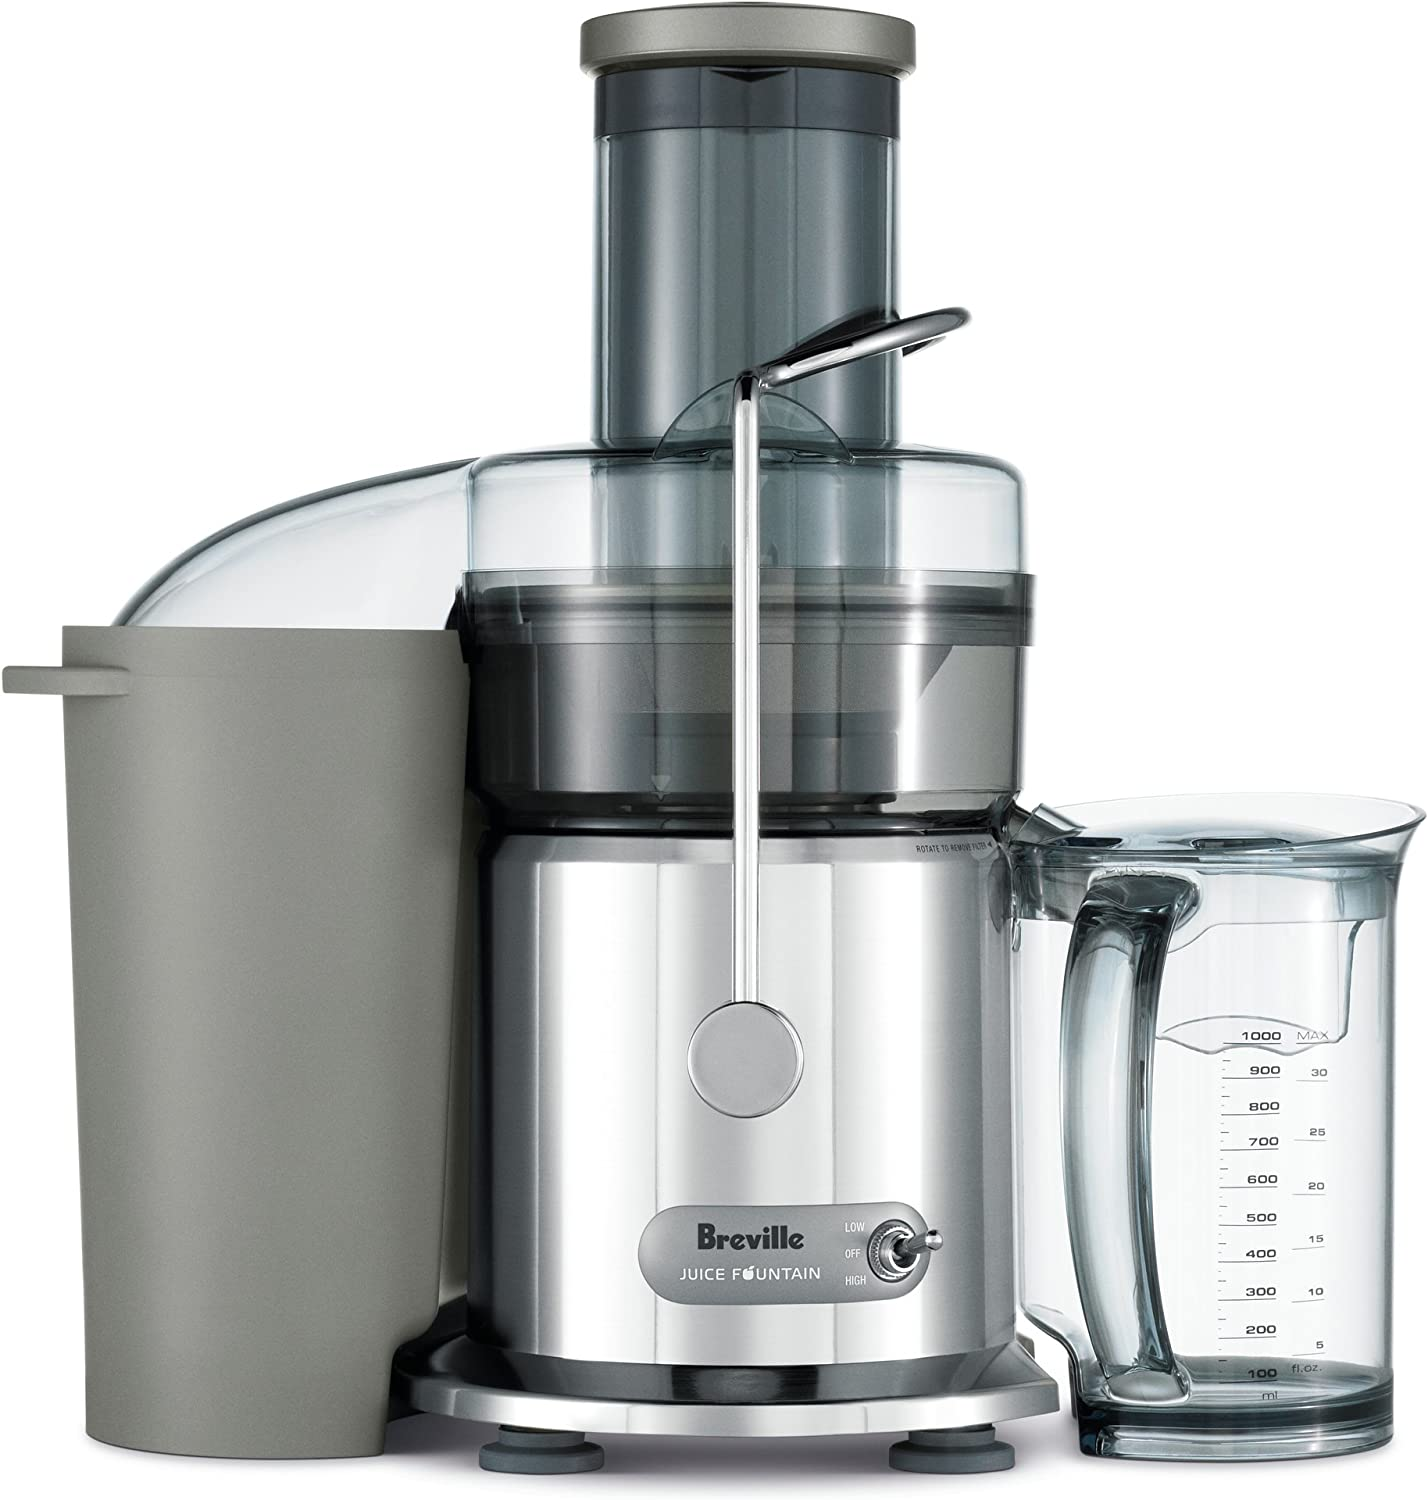 Breville Juice Fountain Max Review